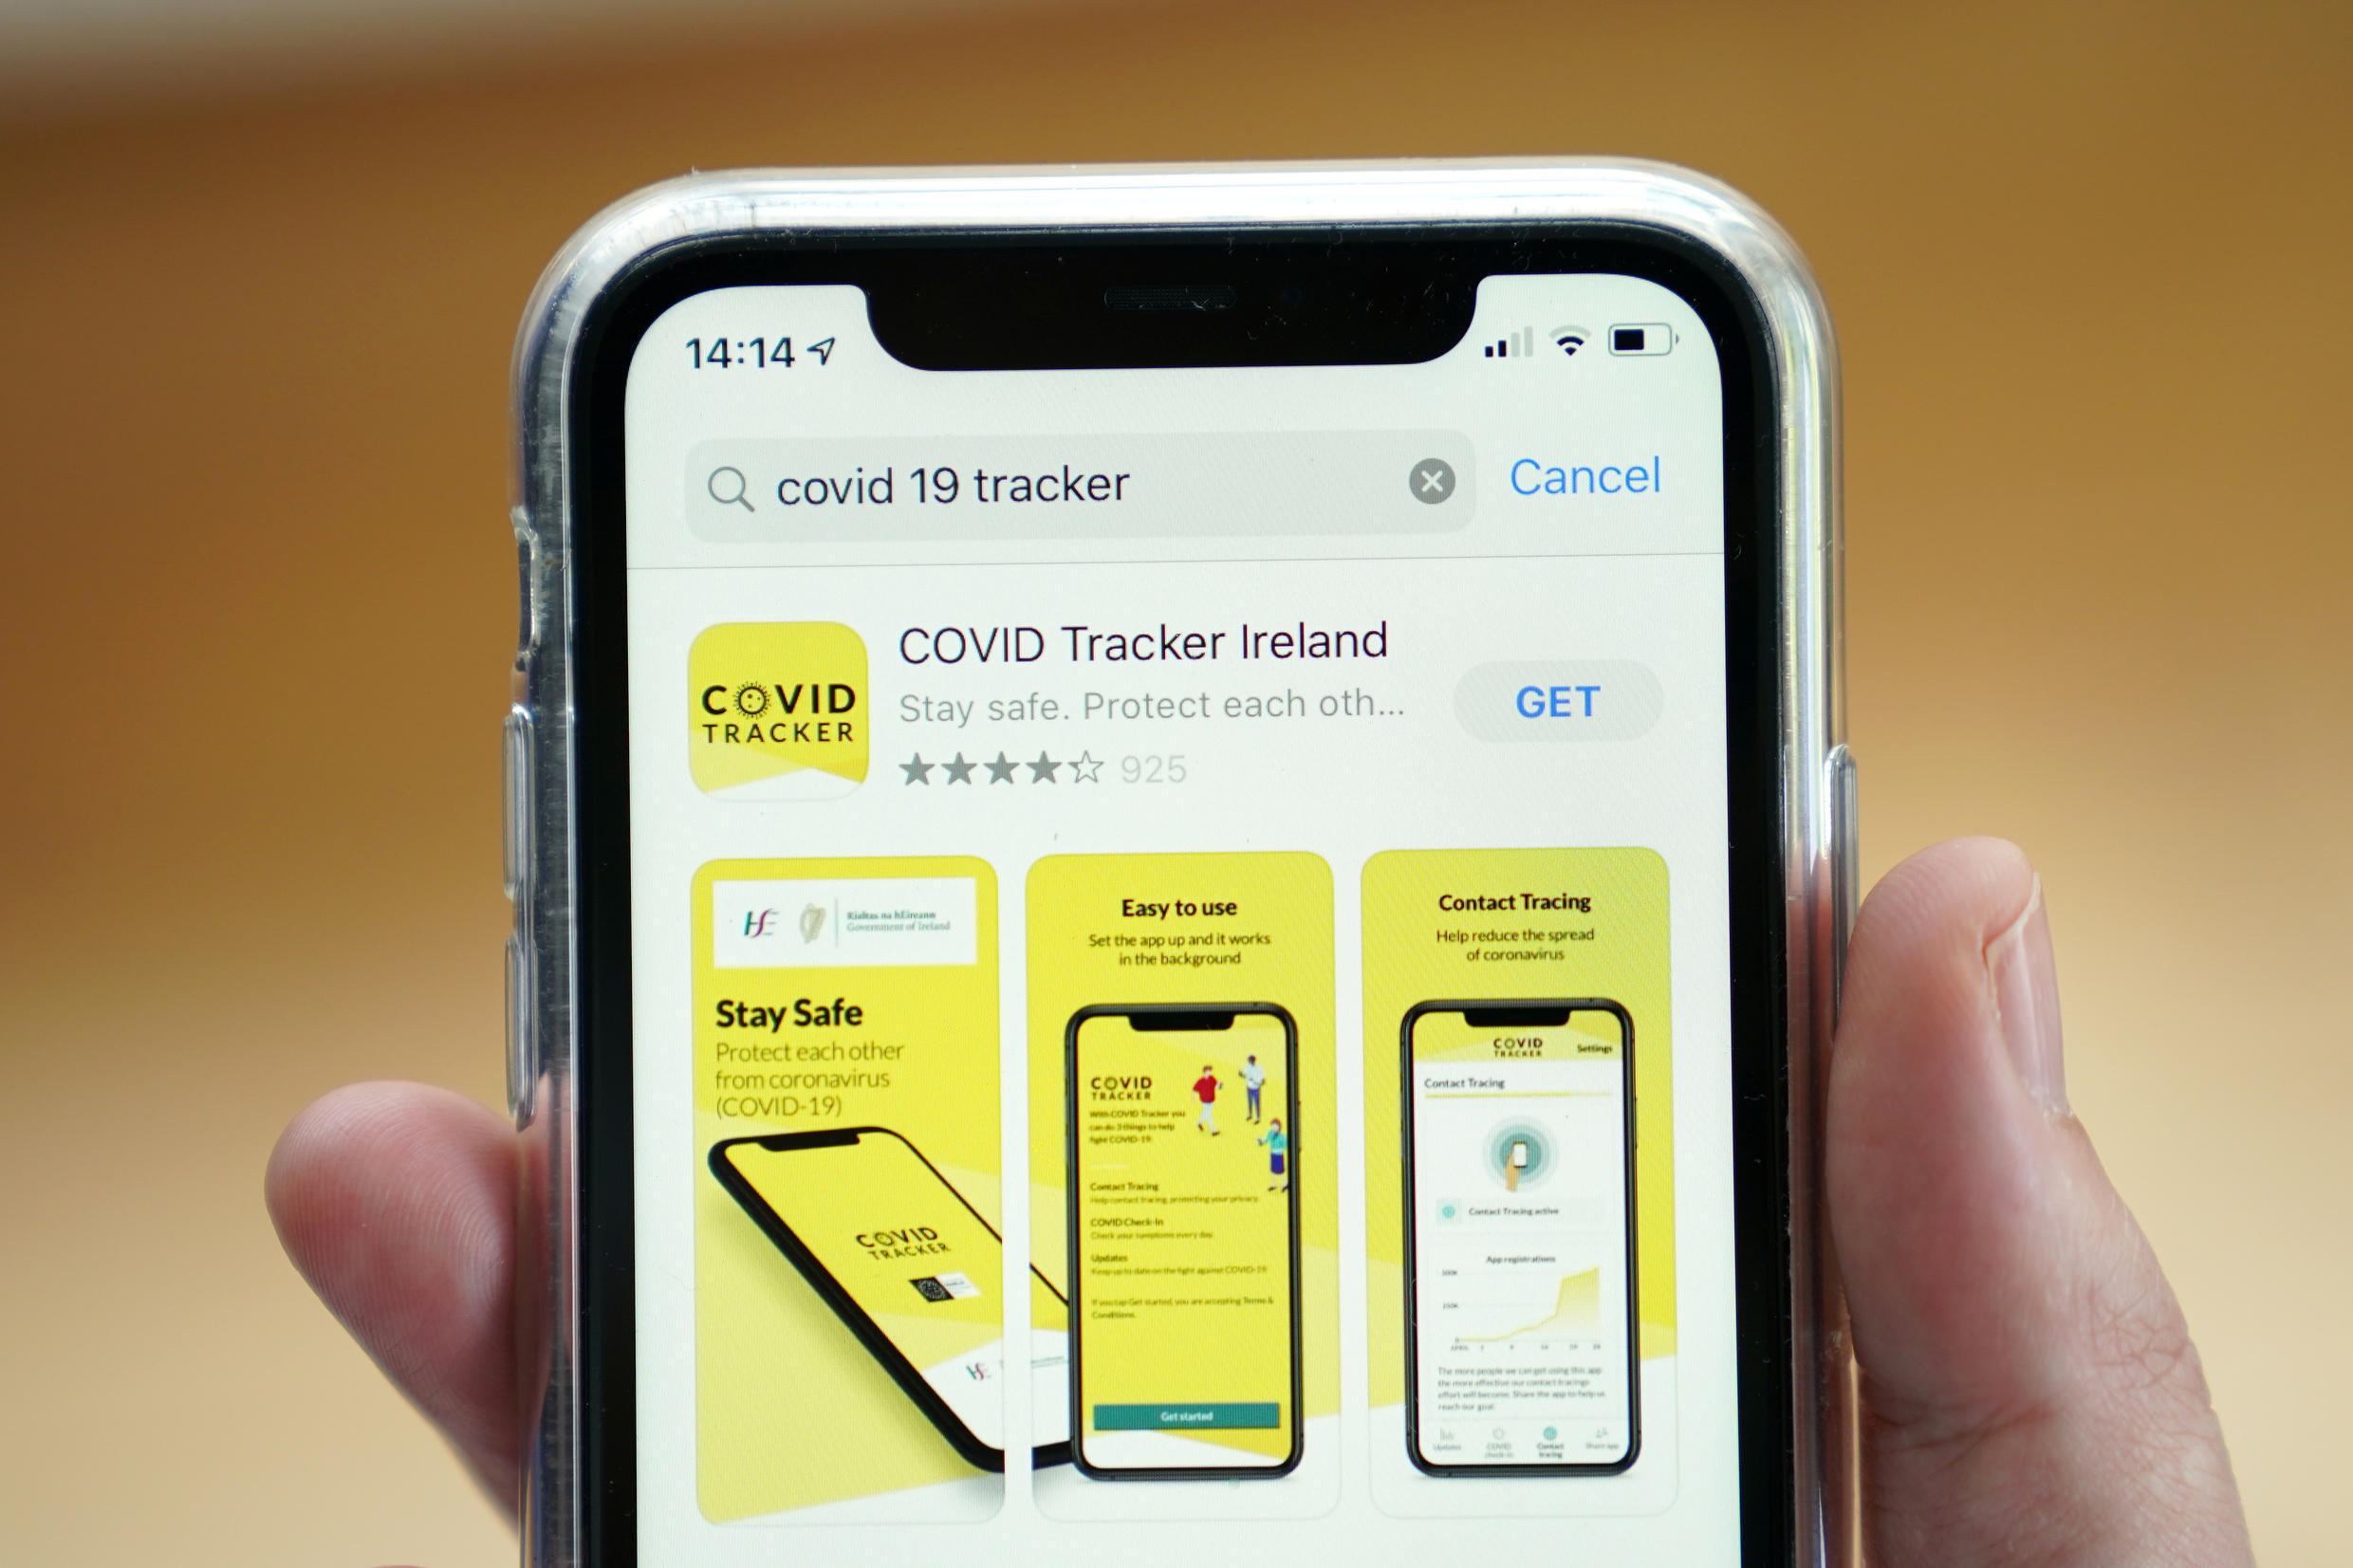 The COVID Tracker Ireland app used for contact tracing the spread of coronavirus disease (COVID-19) is displayed on a mobile phone, as it is held up for an illustration photograph in Galway, Ireland, July 30, 2020.